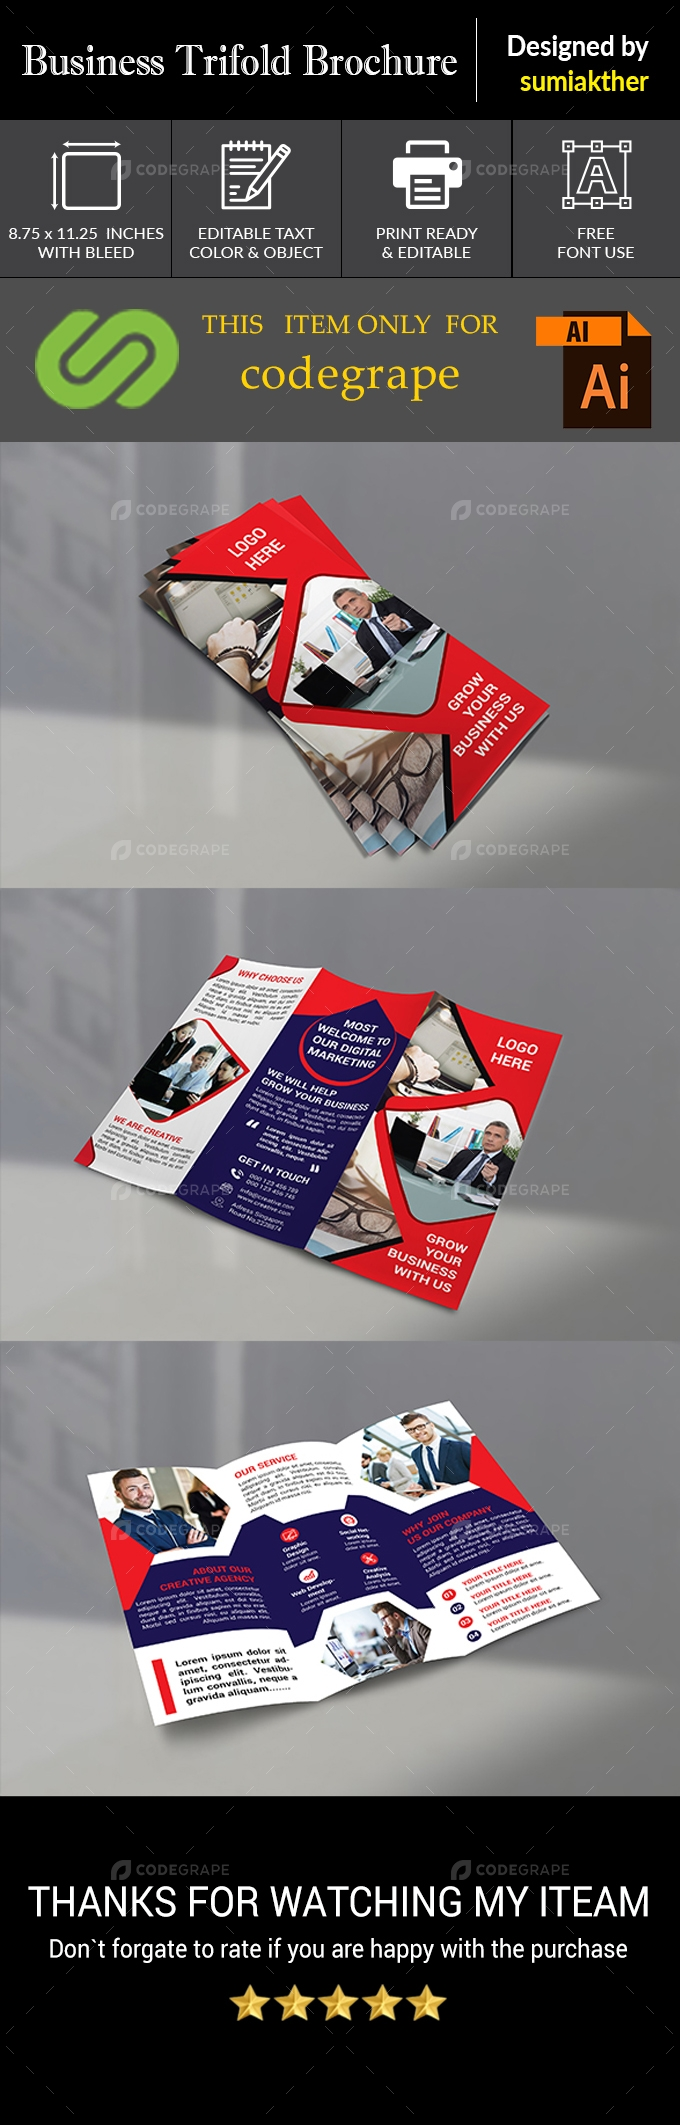 Corporate Trifold Business Brochure